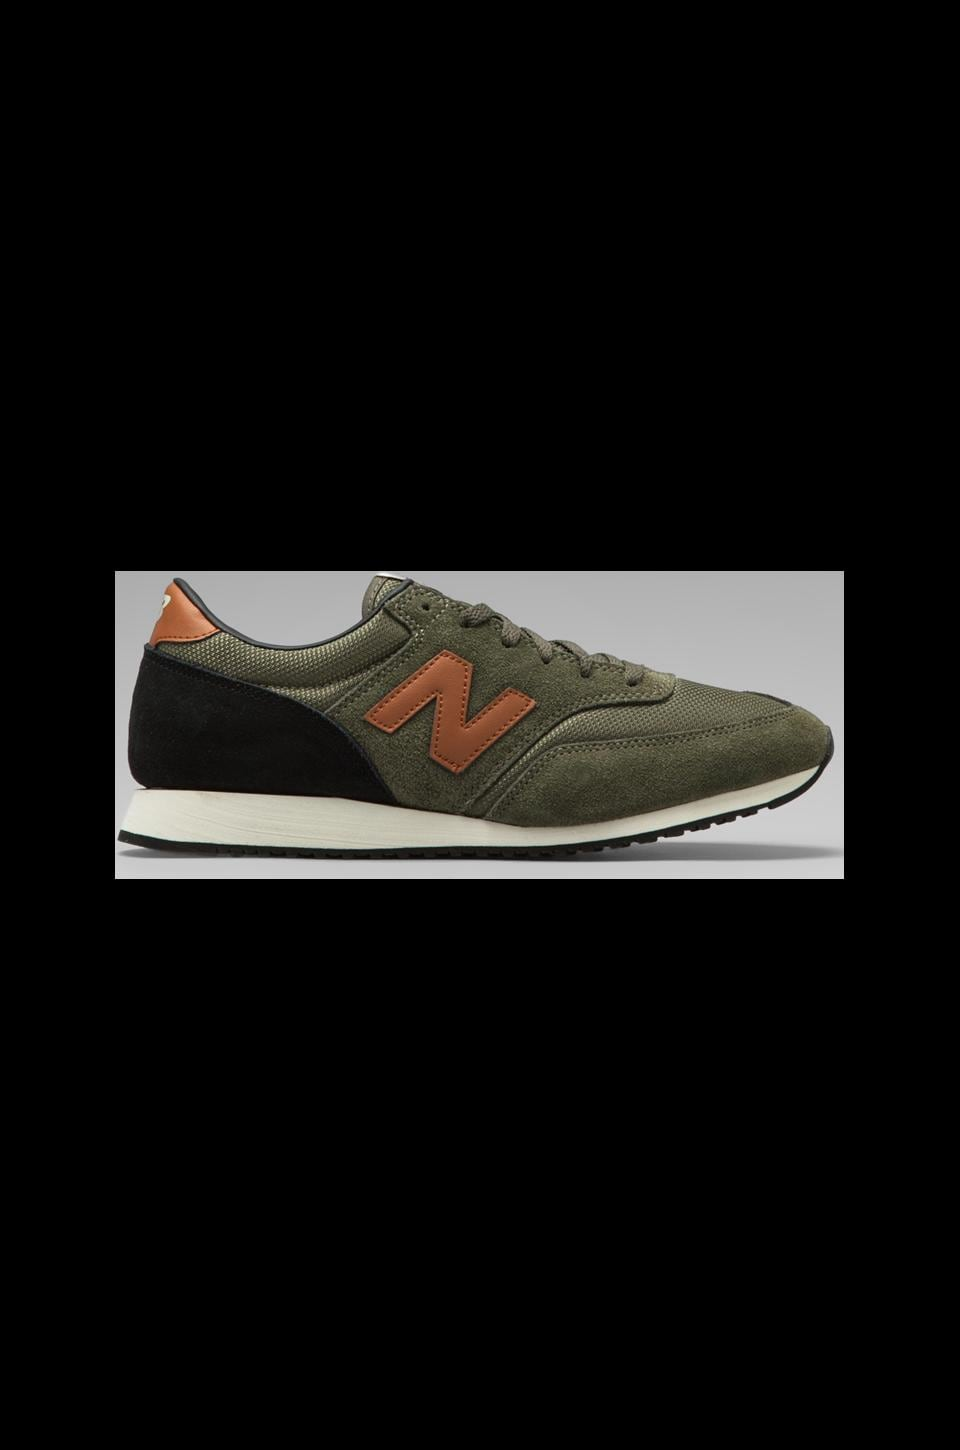 New Balance CM620 in Olive